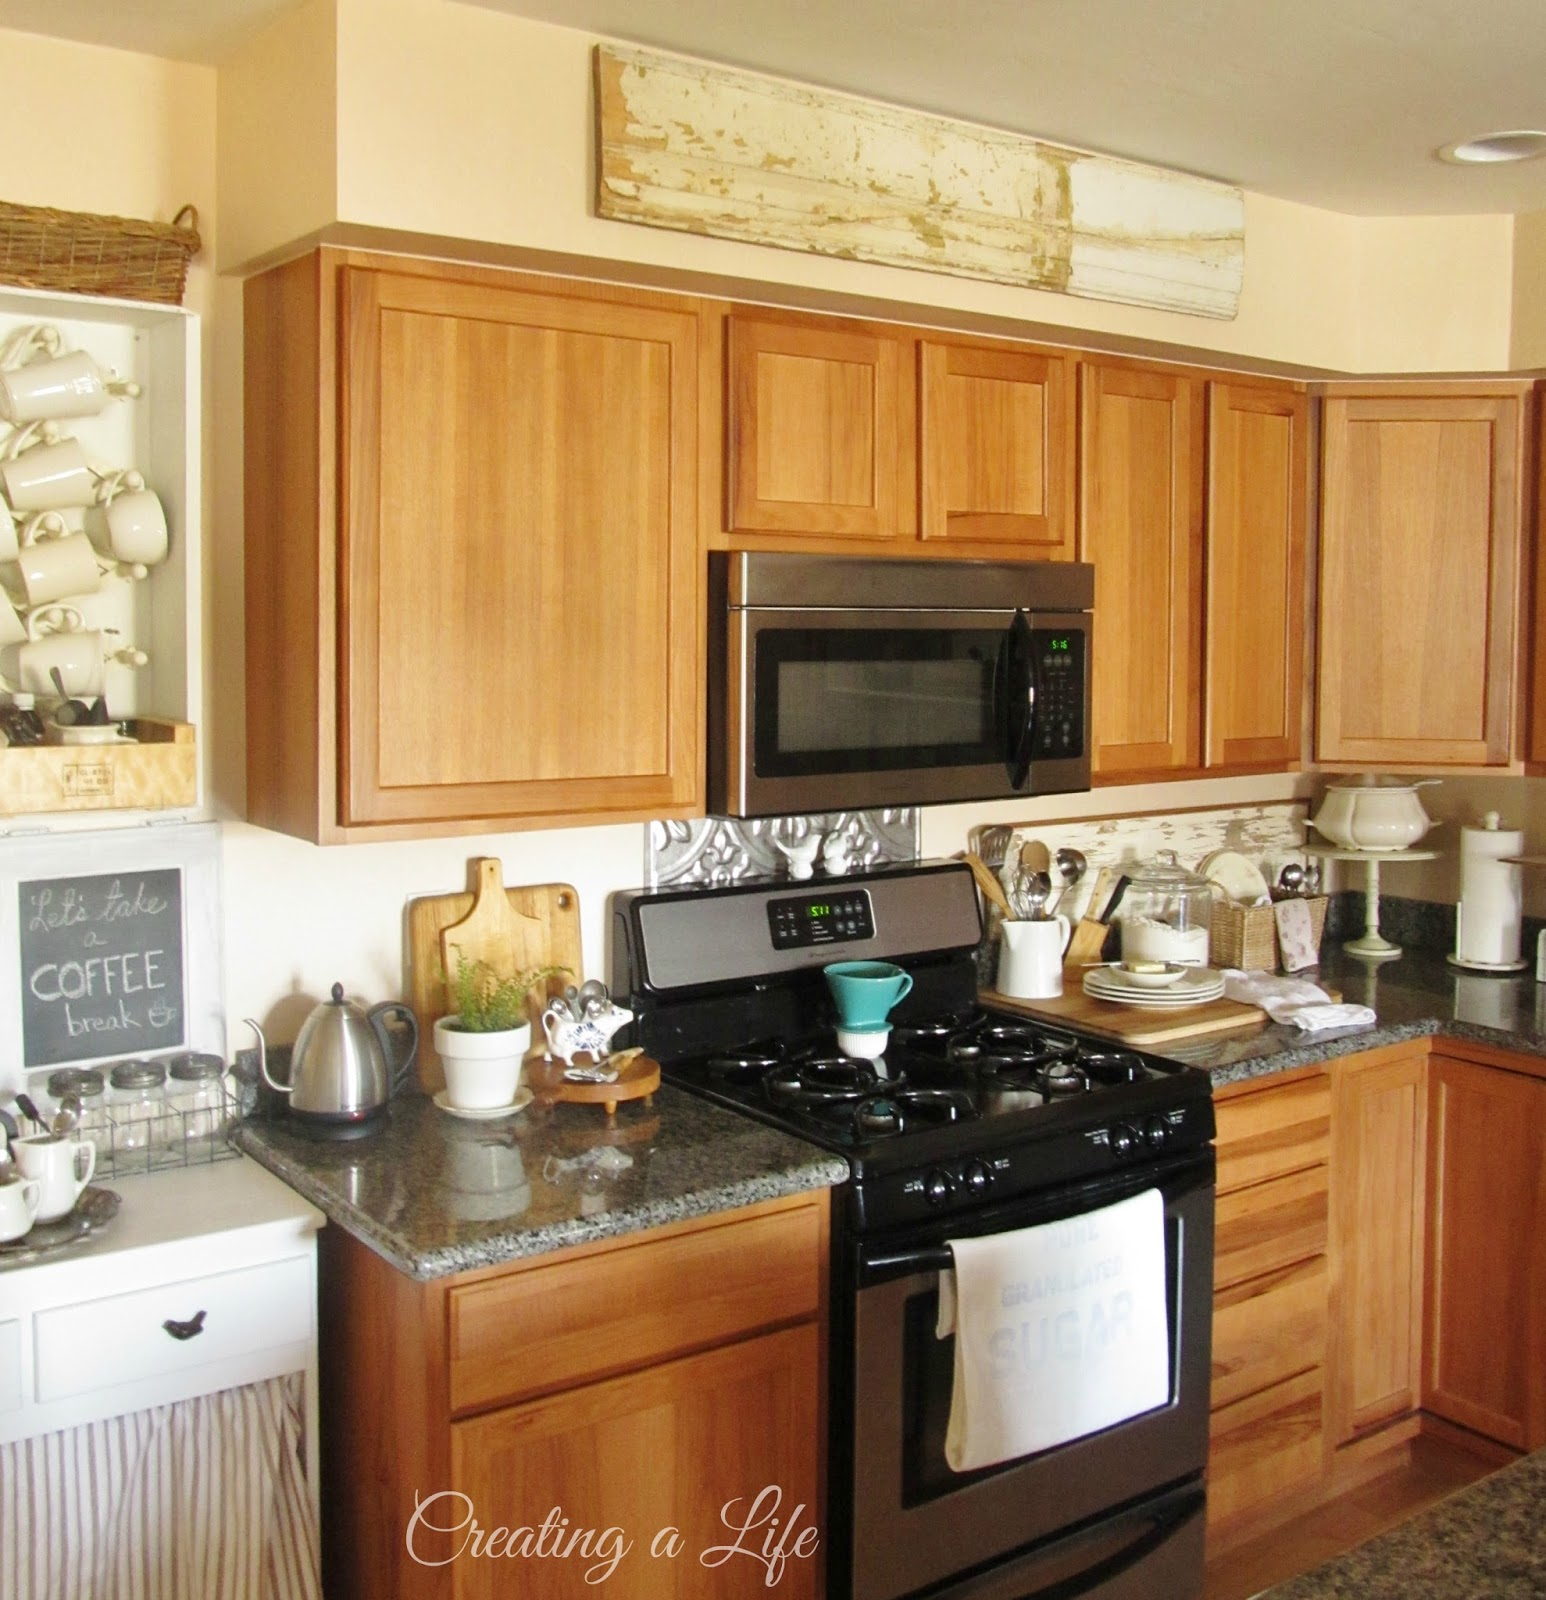 Creating a life farmhouse style kitchen update - Decals for kitchen cabinets ...